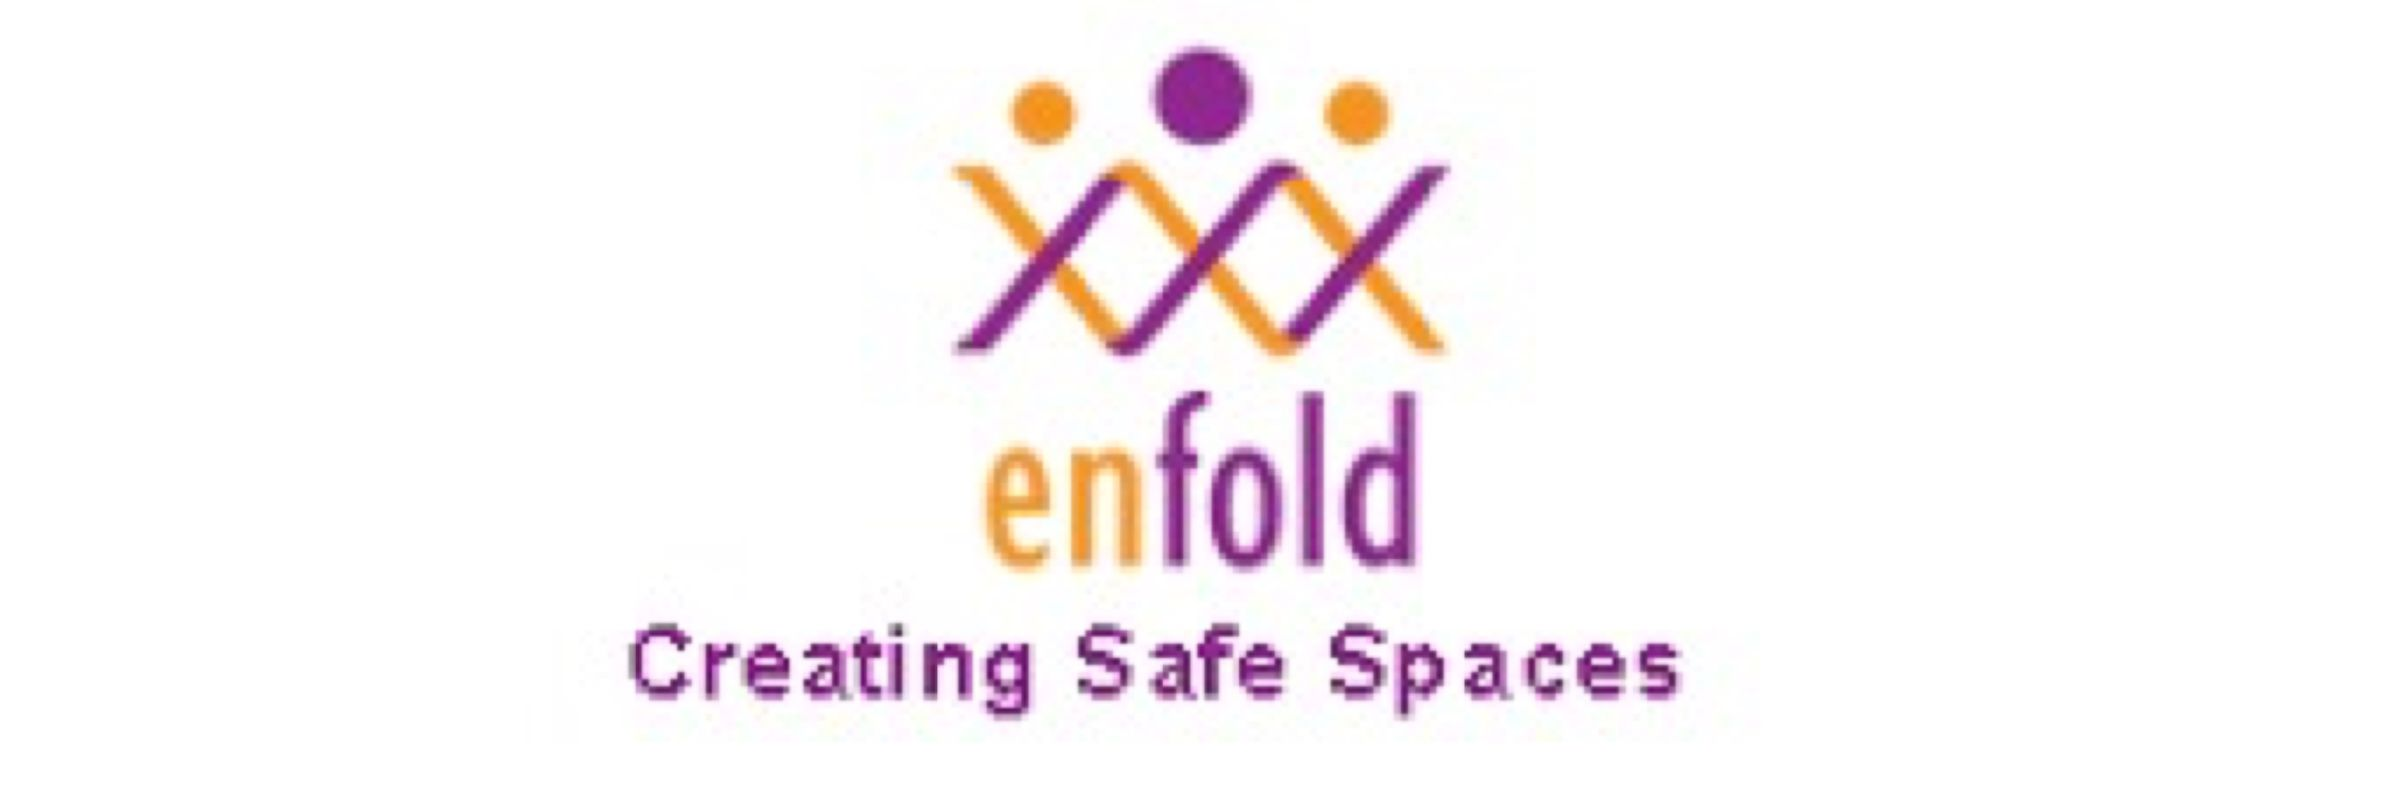 Creating Safe Spaces